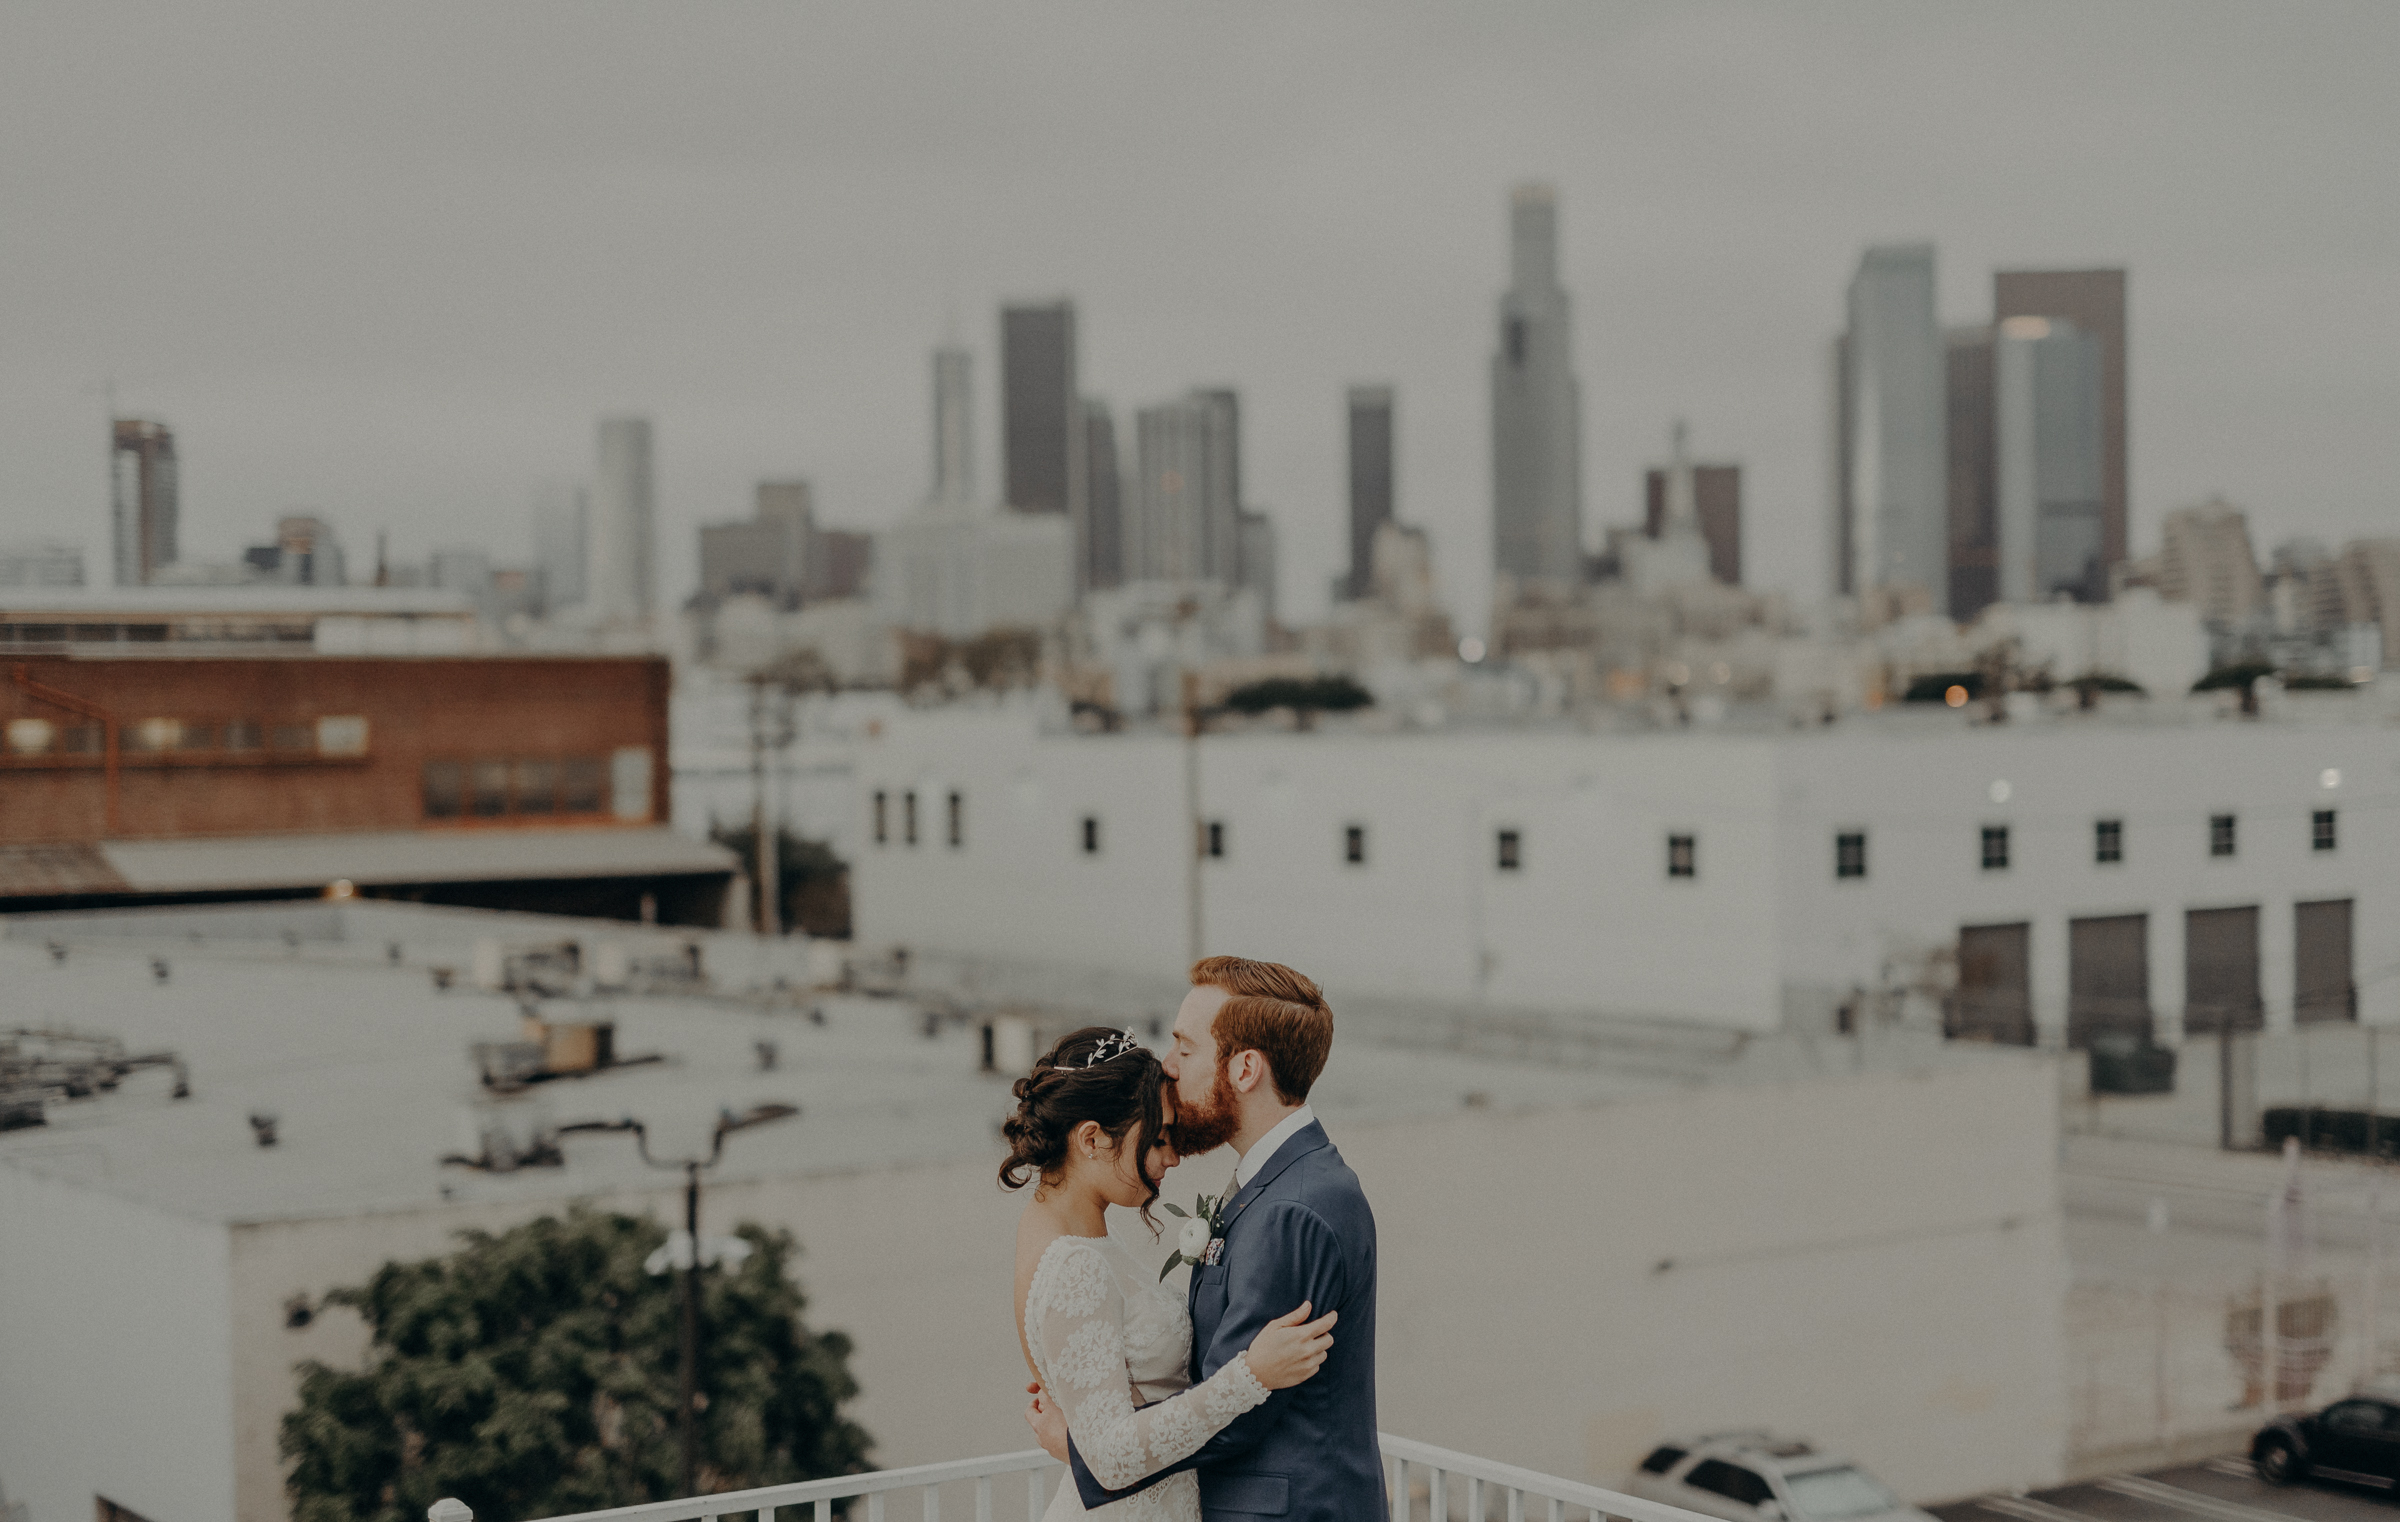 Isaiah + Taylor Photography - The Unique Space Wedding, Los Angeles Wedding Photography 138.jpg